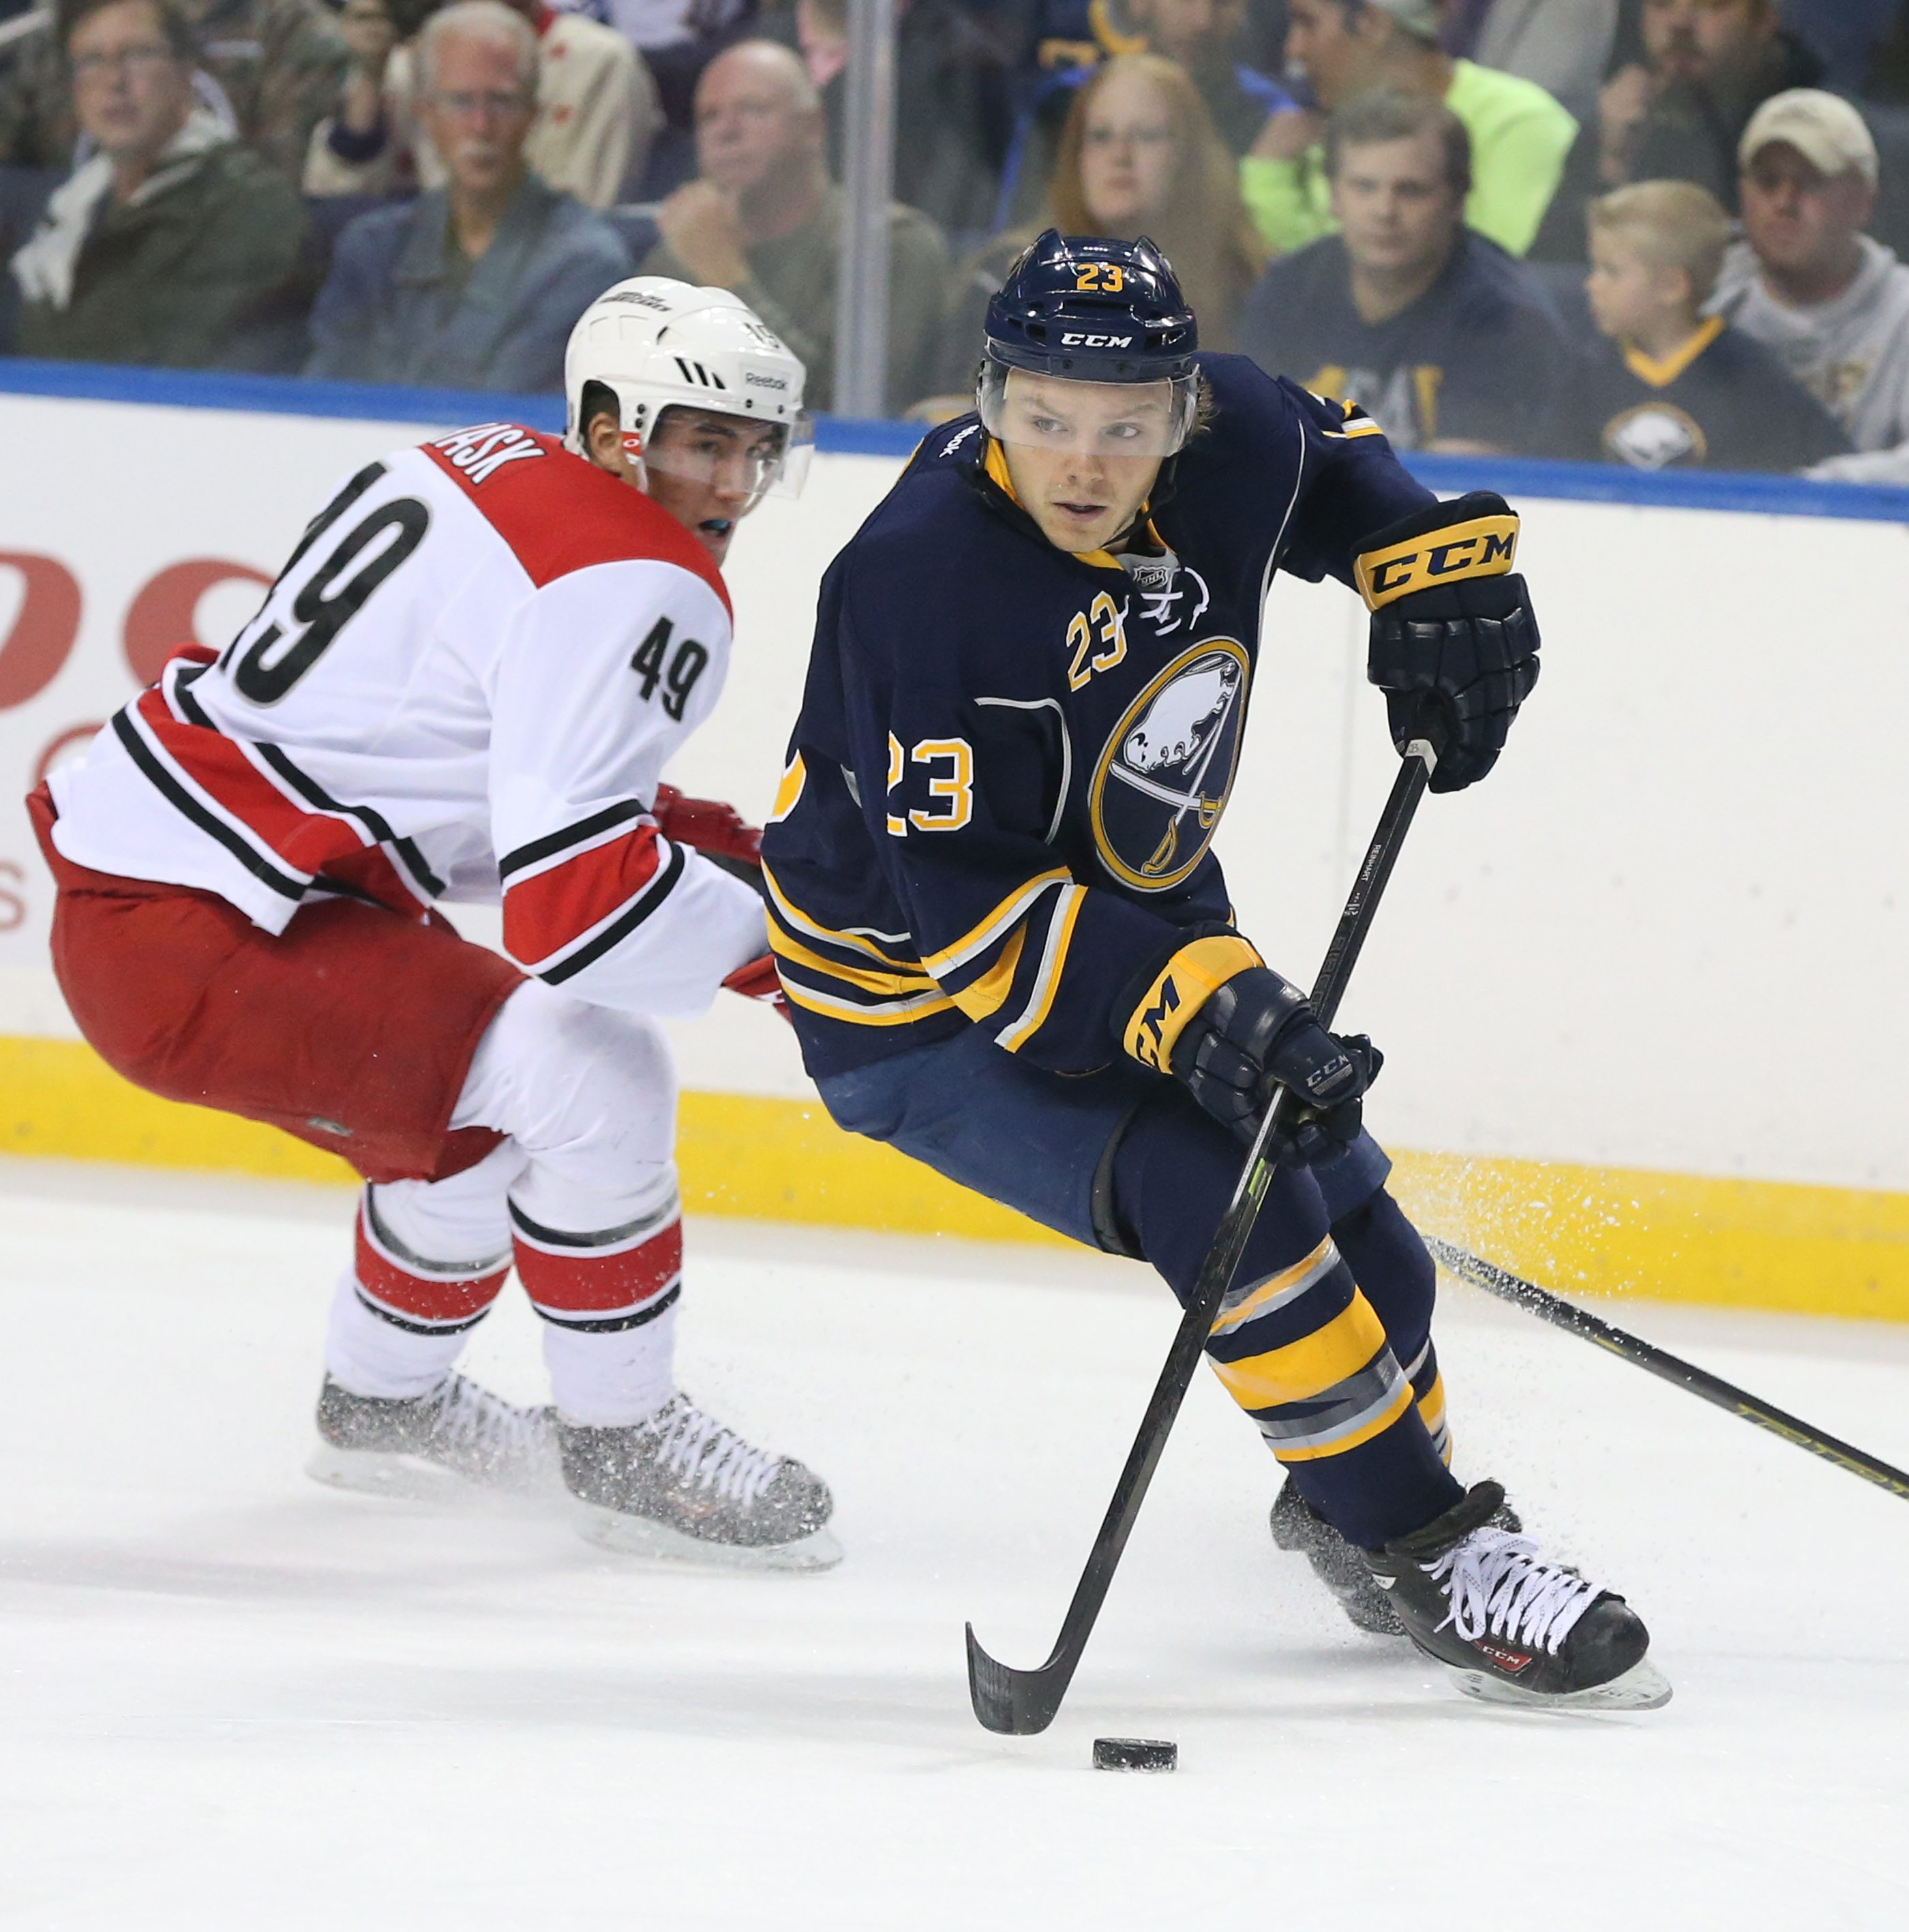 Sam Reinhart, the No. 2 overall pick in the 2014 NHL Draft, will show the Sabres his skills at development camp this week.